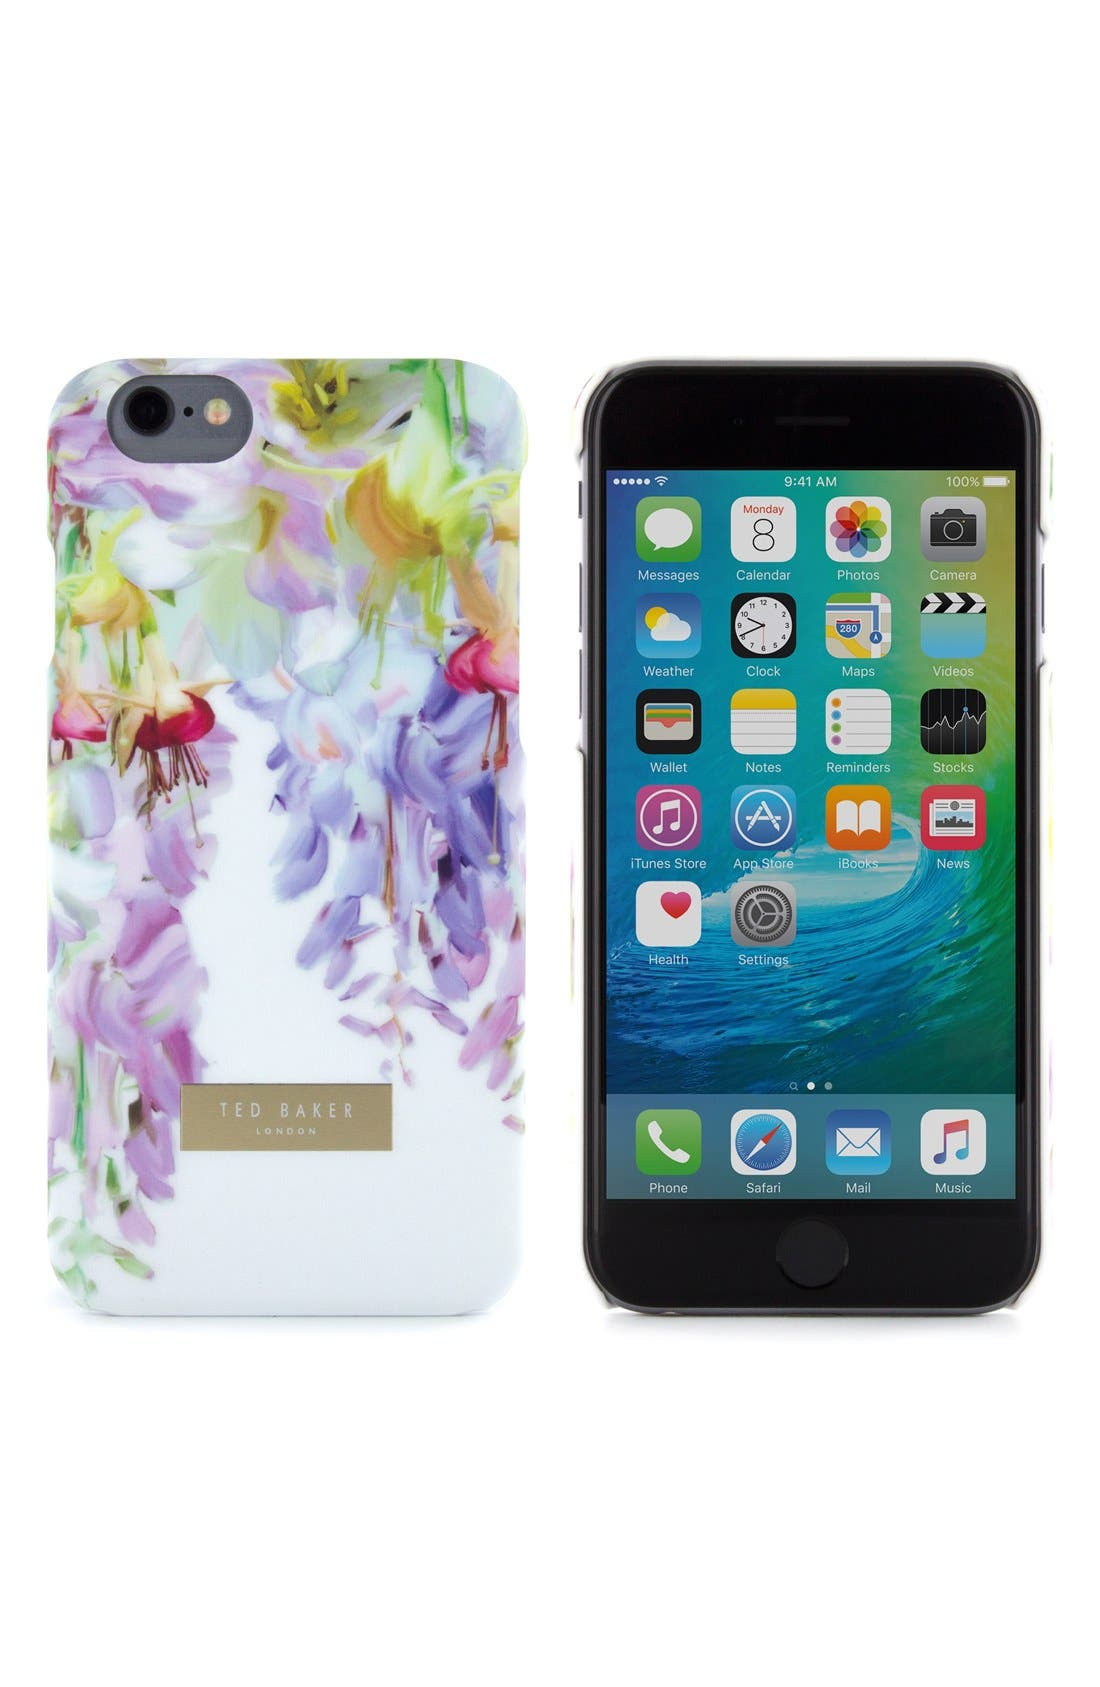 Main Image - Ted Baker London Hanging Gardens iPhone 6/6s Case